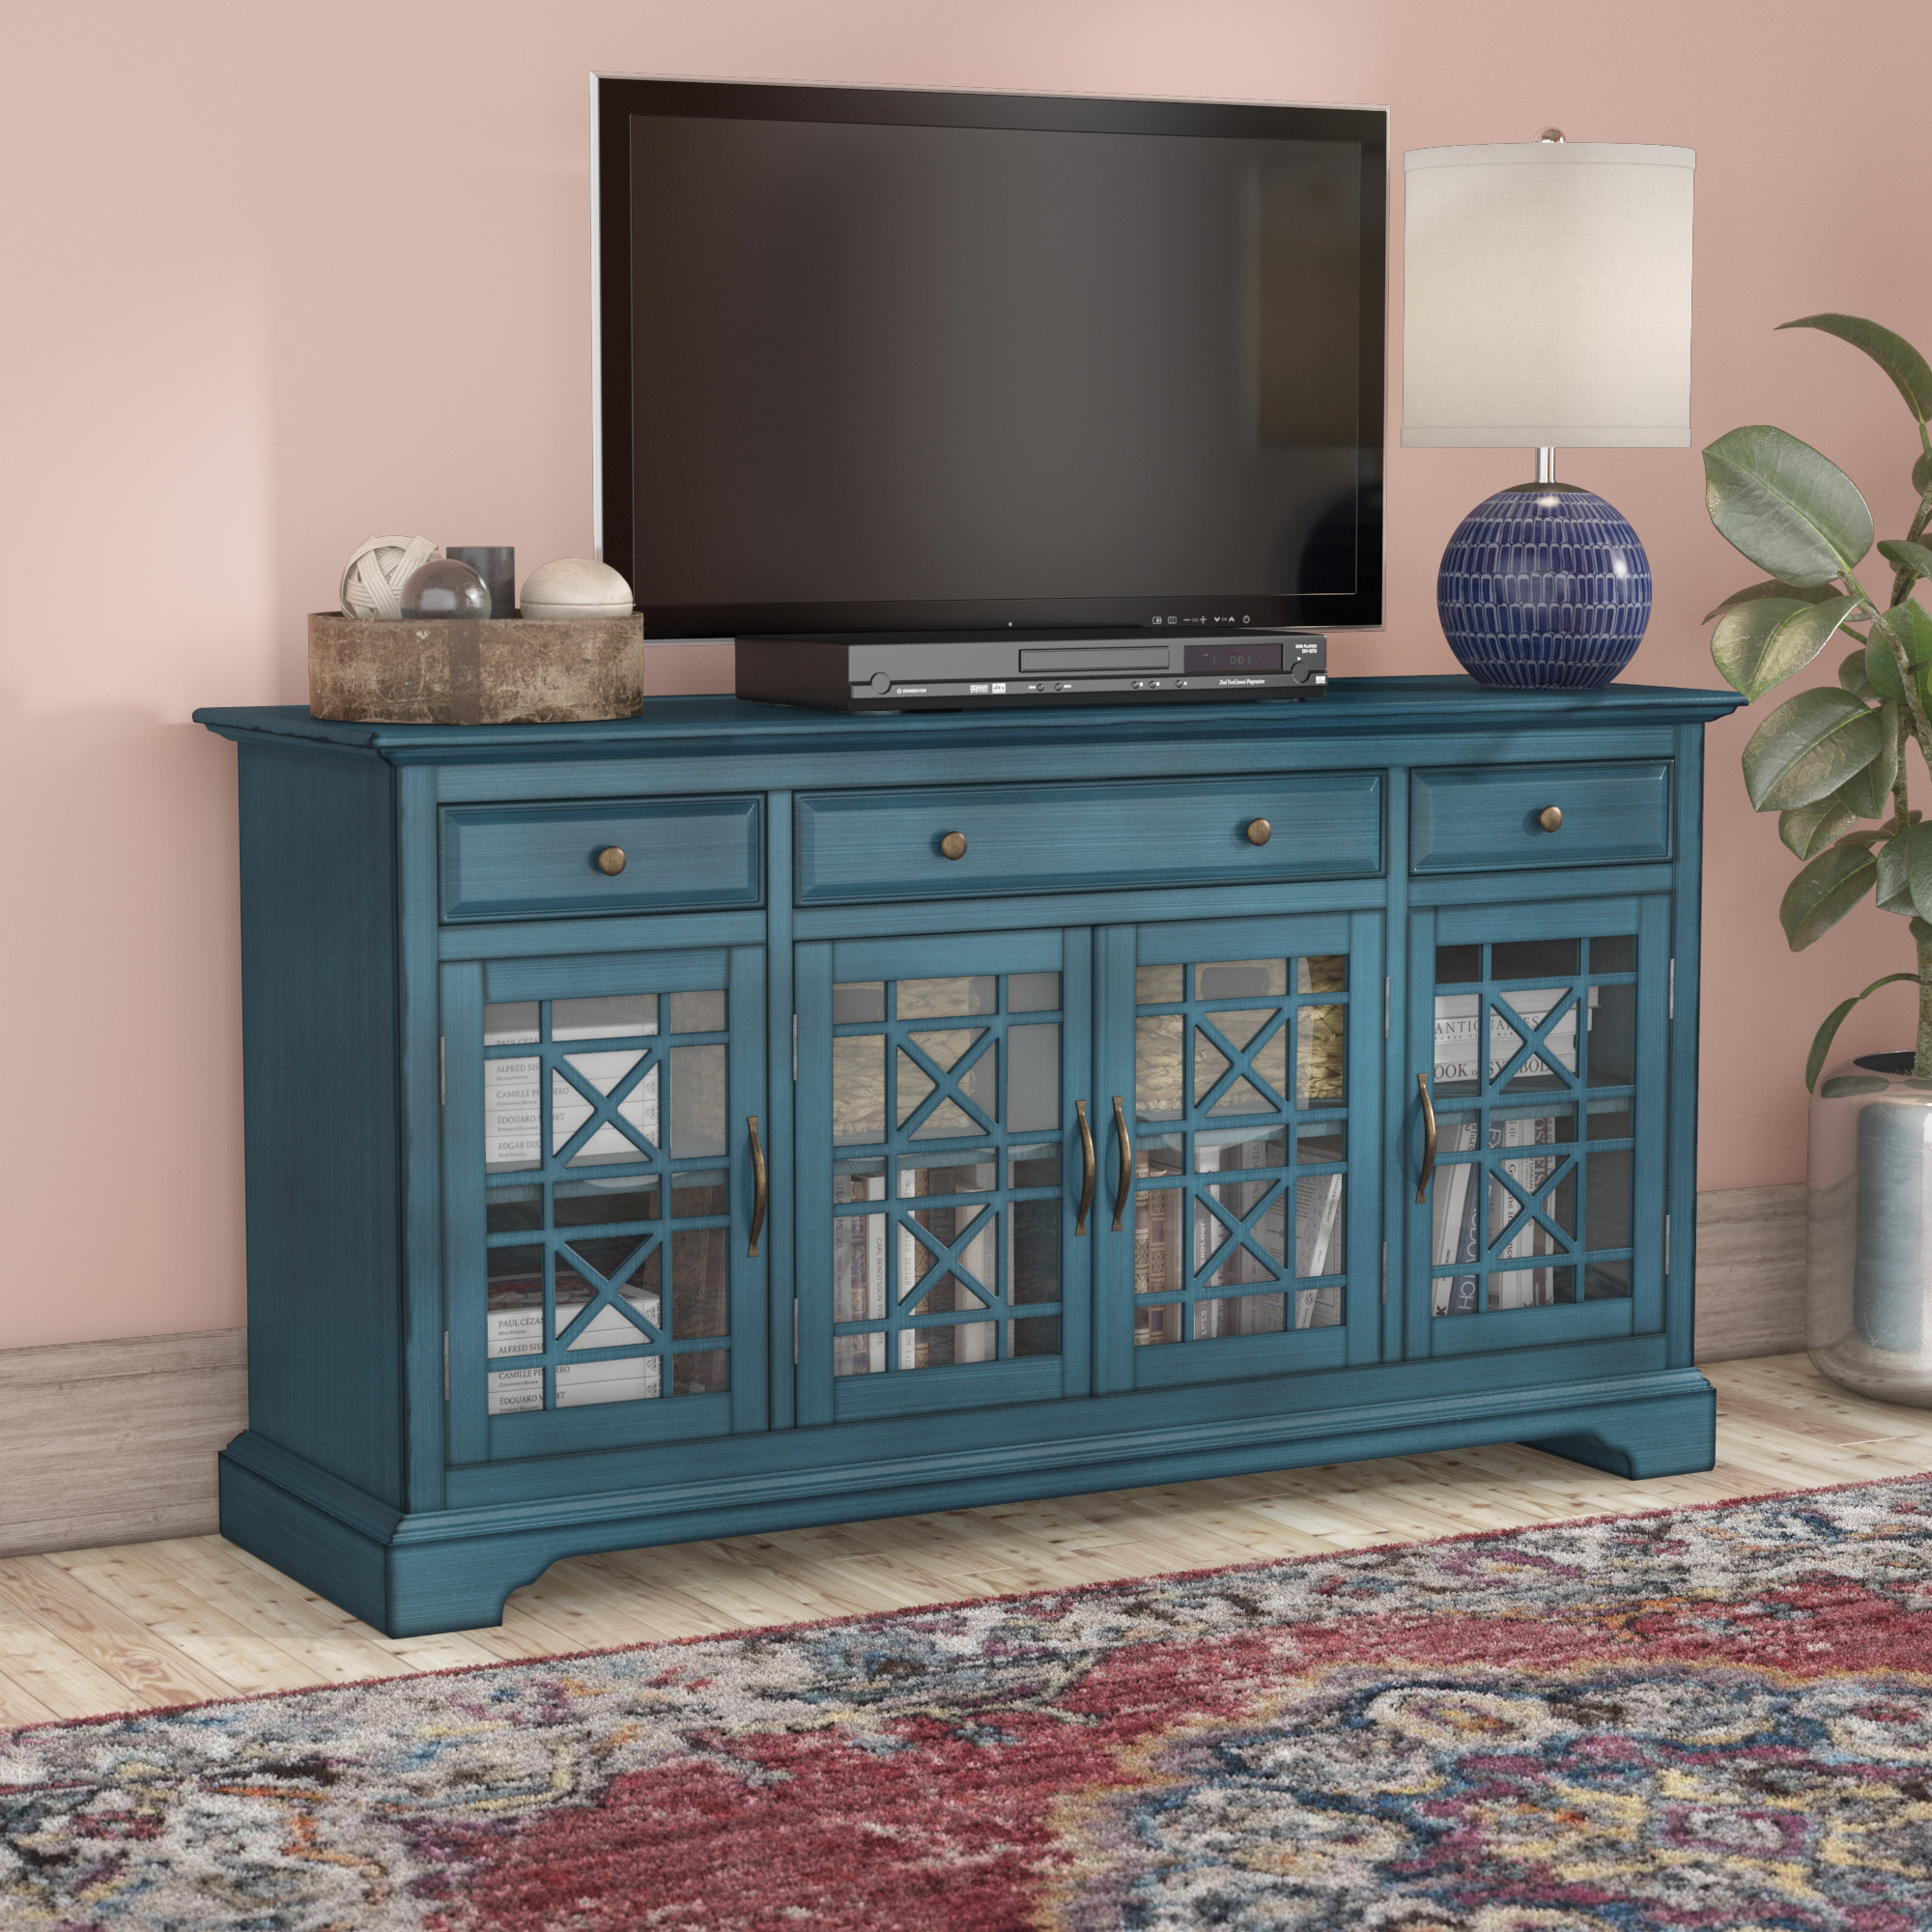 Tv Stand For 75 Inch Tv | Wayfair Regarding Laurent 70 Inch Tv Stands (View 19 of 30)